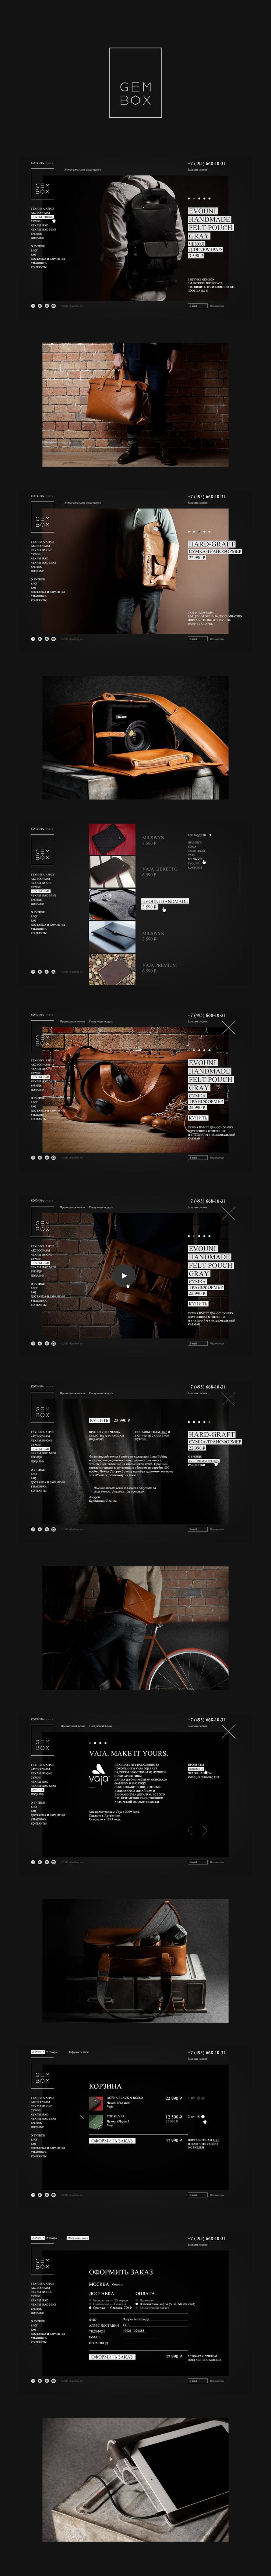 GemBox | #webdesign #it #web #design #layout #userinterface #website #webdesign <<< repinned by an #advertising #agency from #Hamburg / #Germany - www.BlickeDeeler.de